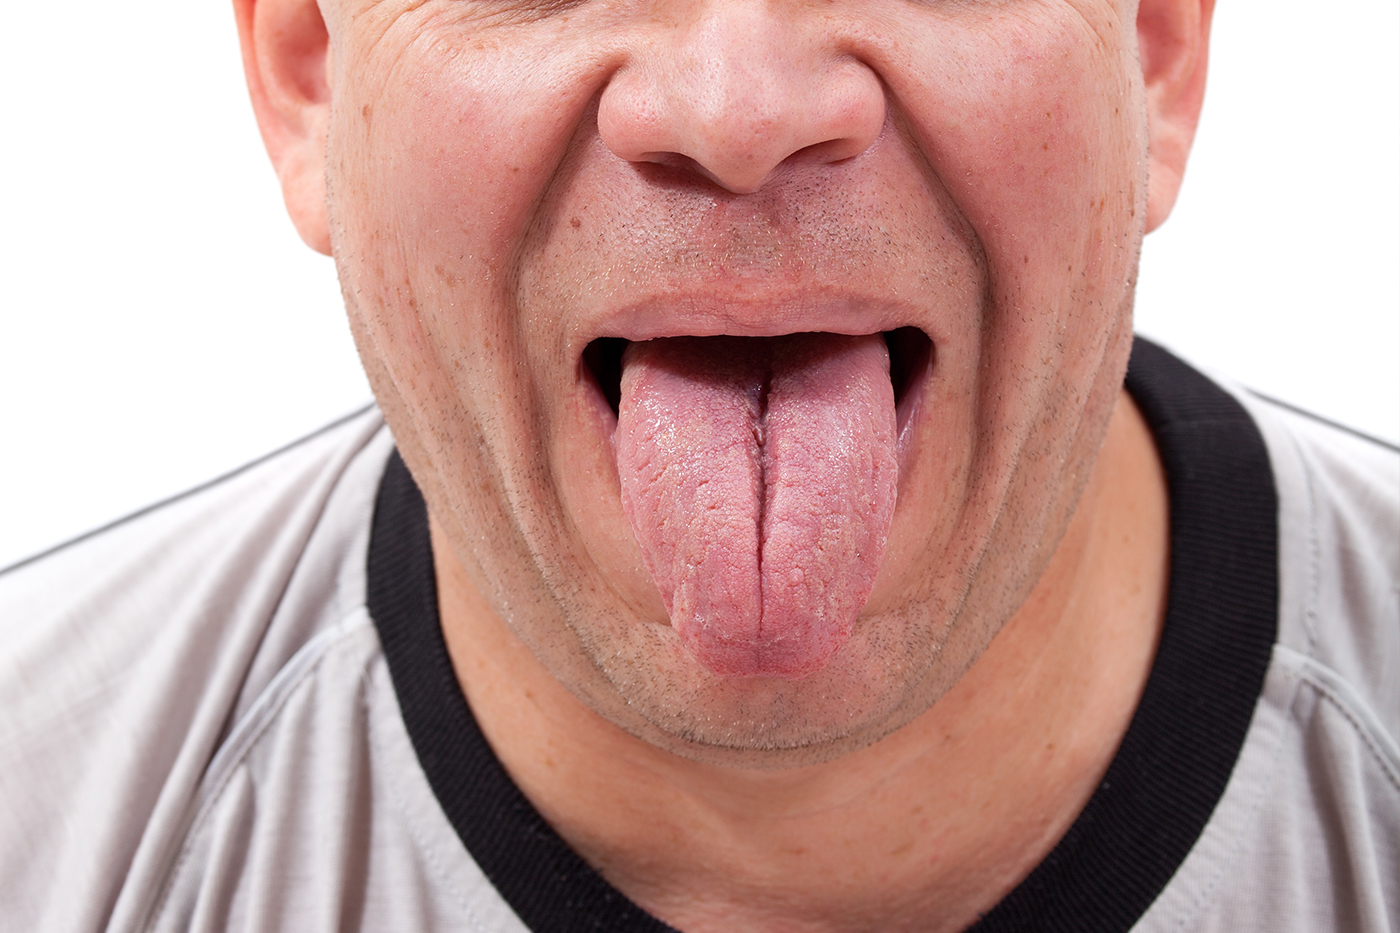 sleep apnea and tongue exercises - surgical sleep solutions